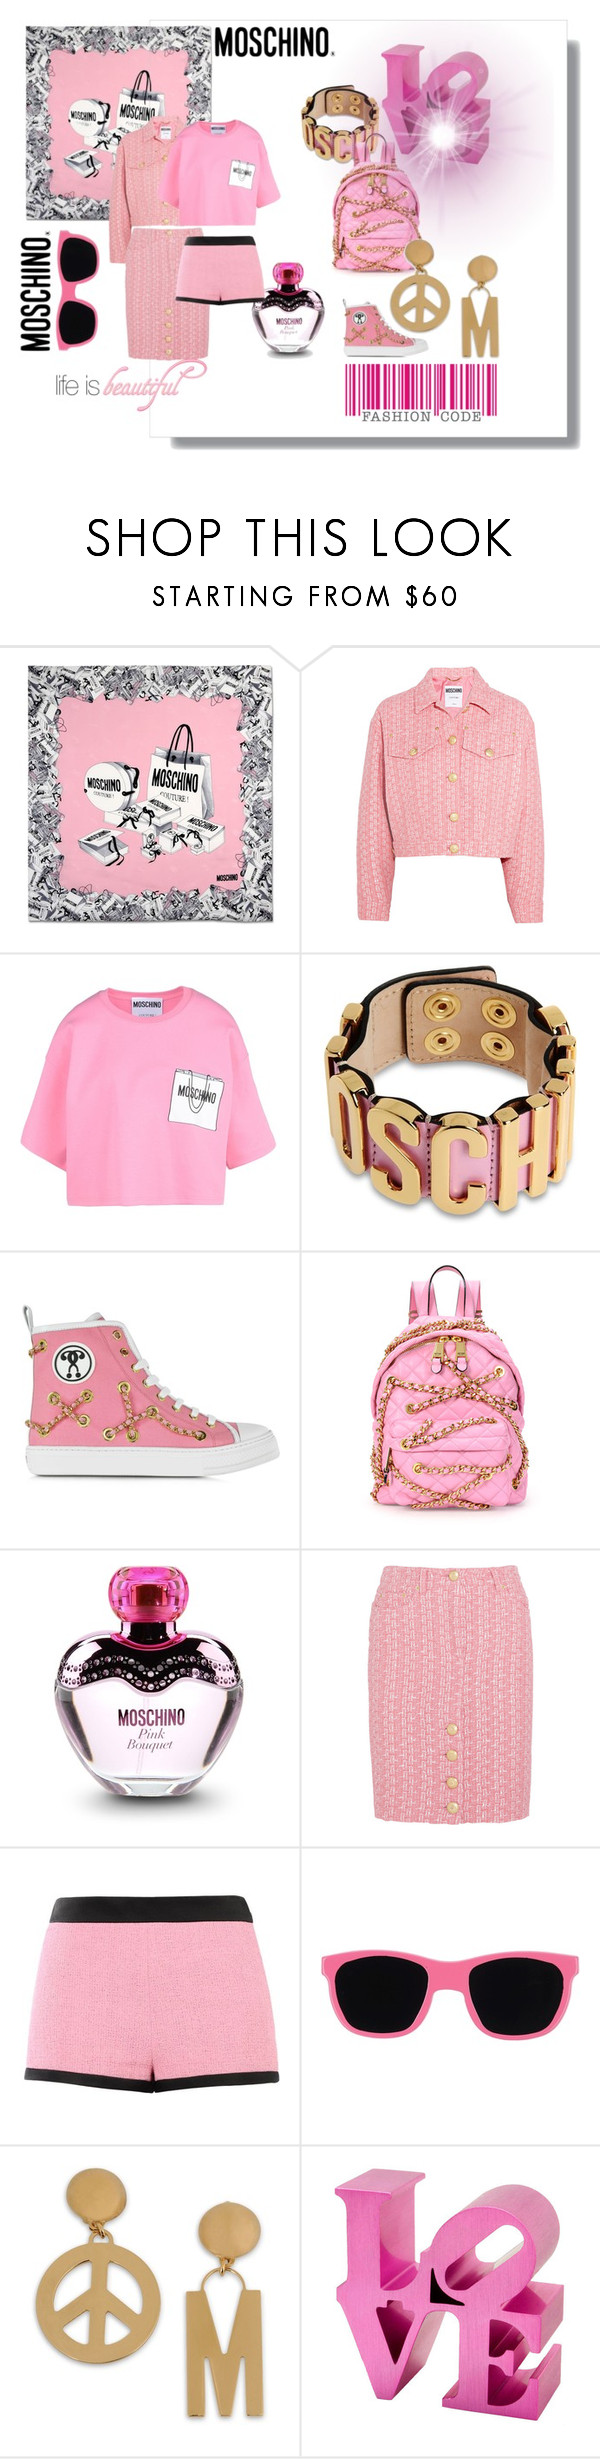 """LOVE MOSCHINO"" by nurinur ❤ liked on Polyvore featuring Moschino"